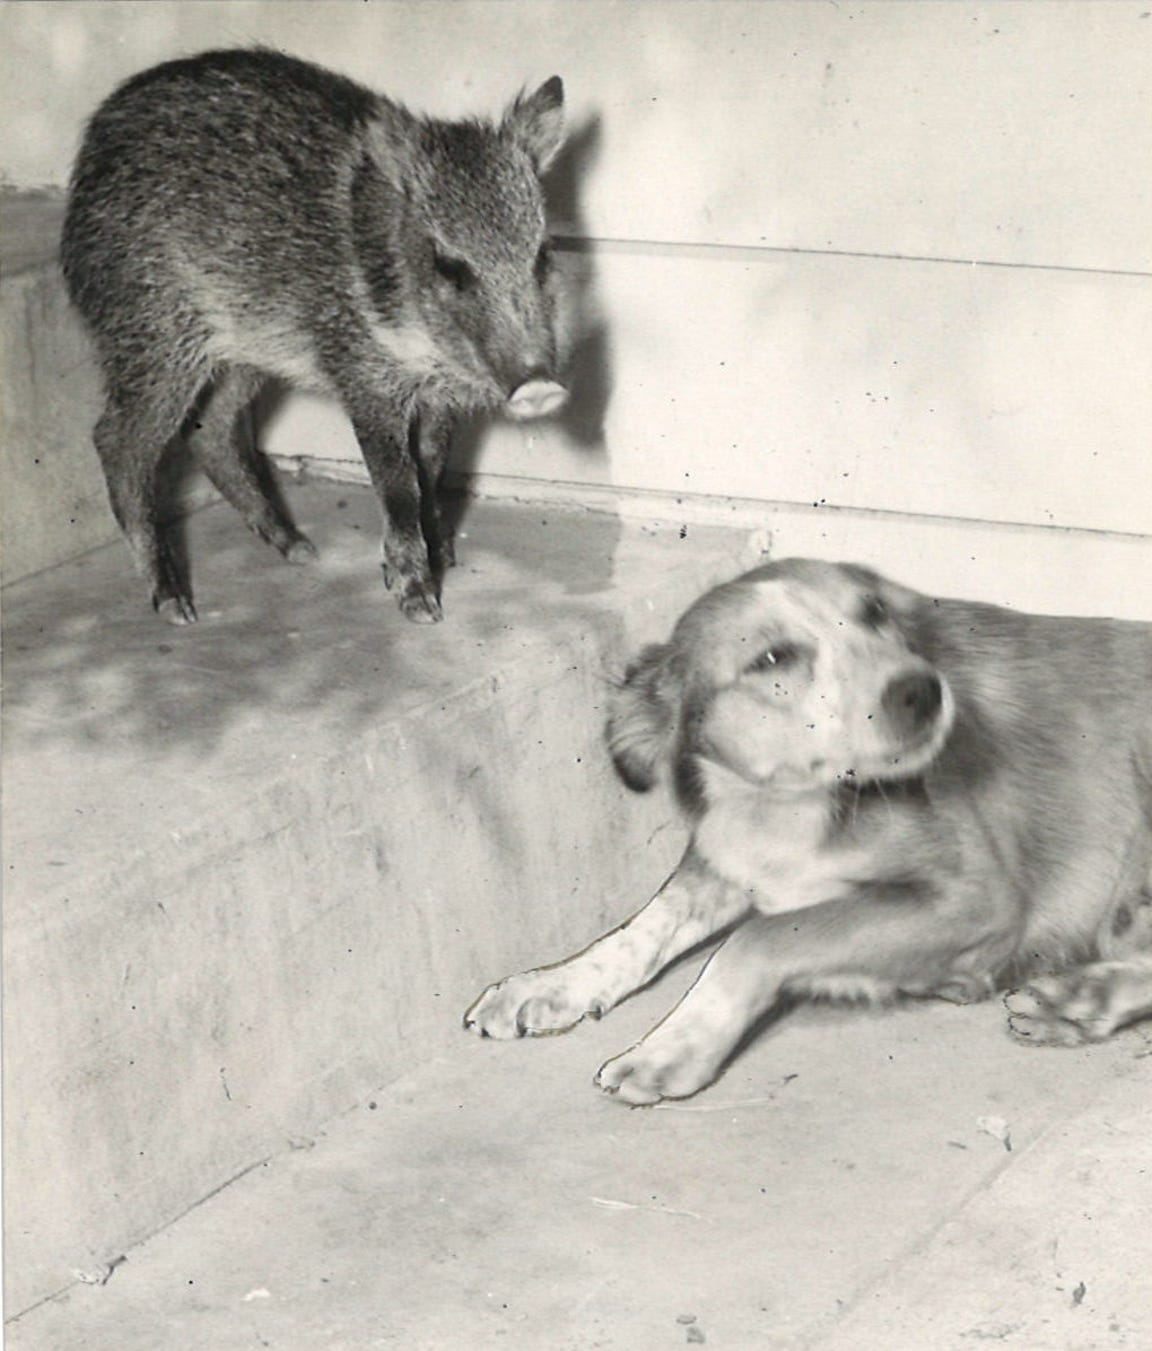 Coffe Pot (left) and Runt outside their home on Wilson Drive in Corpus Christi in May 1958. Coffee Pot got her name because her grunting sounded like a percolator. Todora Rucker adopted the baby javelina at three days old and Runt nursed Coffee Pot alongside her puppies. Texas Parks and Wildlife picked up the javelina and rehomed her with a state wildlife exhibition.